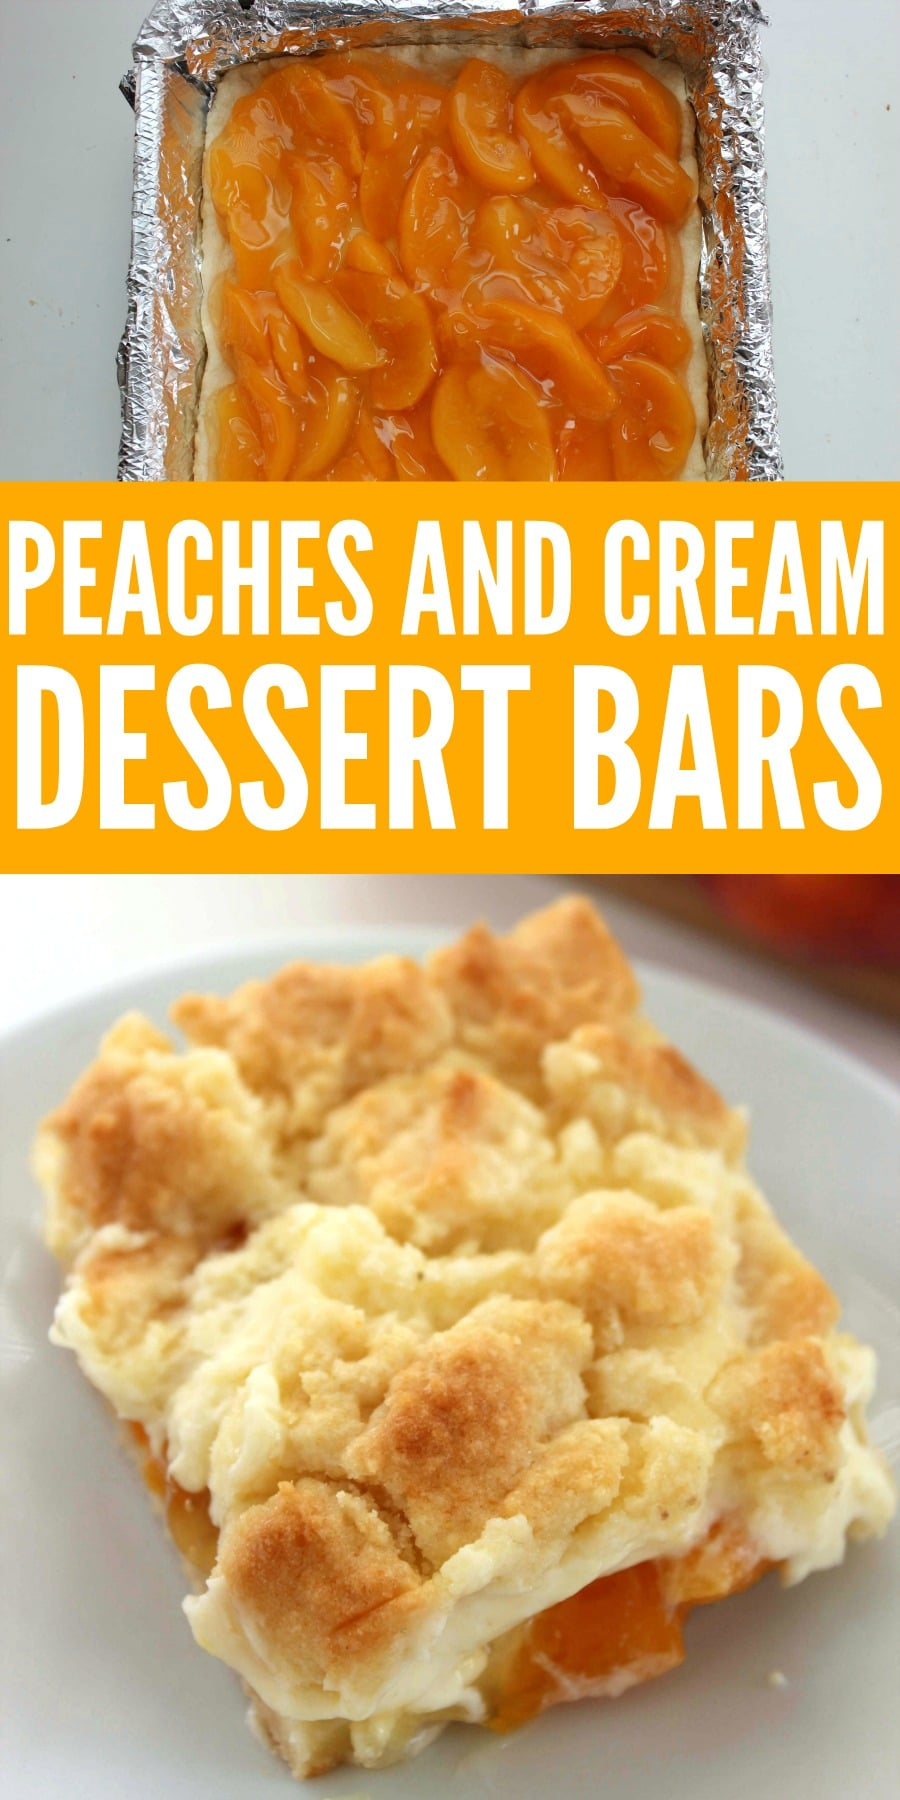 Peaches and Cream Dessert Bars Recipe